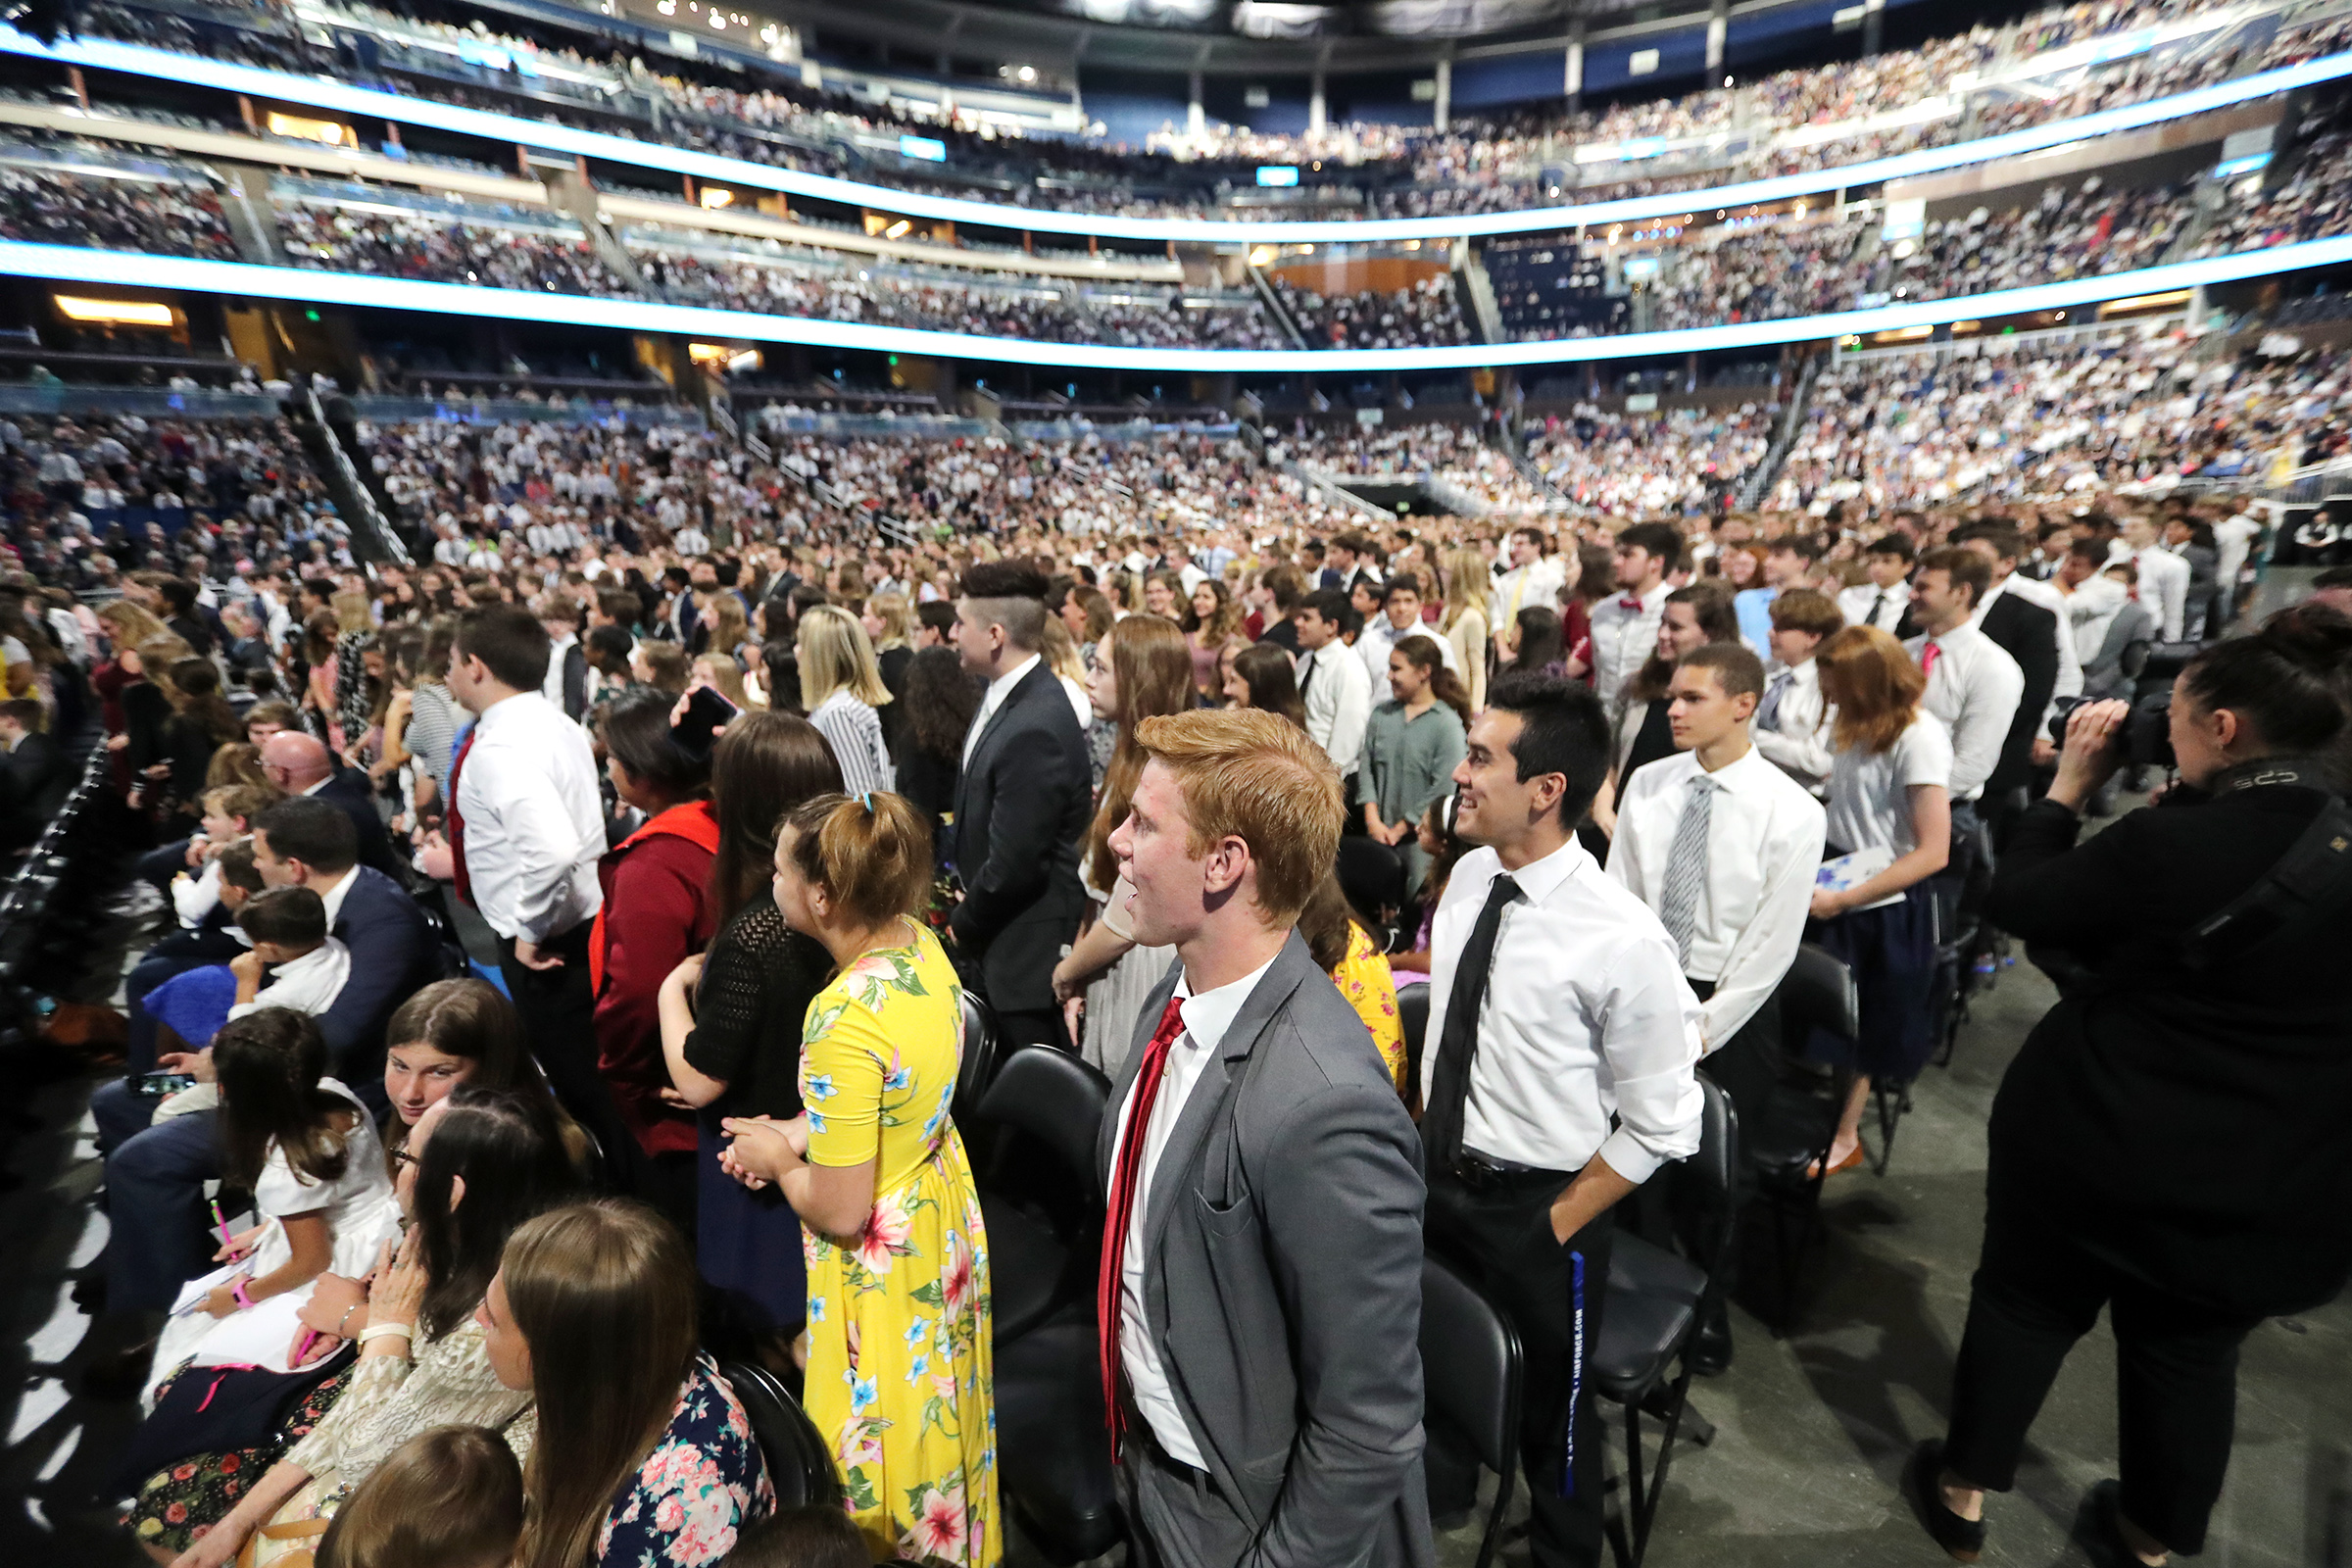 Young men and women stand at the request of President Russell M. Nelson as he speaks during the devotional at the Amway Center in Orlando, Florida, on Sunday, June 9, 2019.